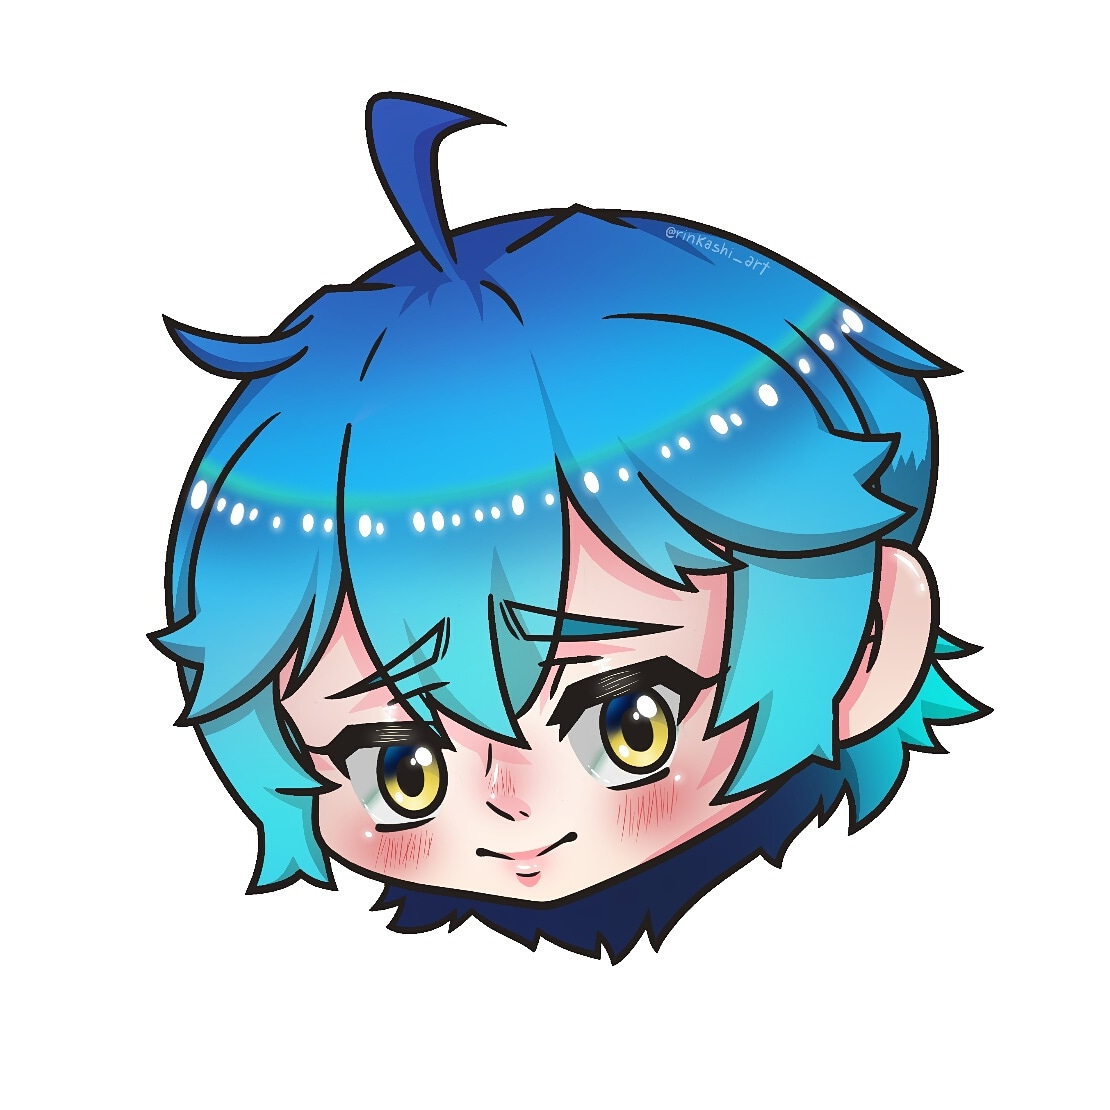 🇯🇵💫It's not the Inktober but I wanna post this anyway, the baby boy is back but even cuter~ 💫🇯🇵 · · · 💙🔪KYOKI MENTARU🔪💙 #drawing #paint #art #illustration #digitalart #digitaldrawing #animedrawing #chibi #chibidrawing #cute #shy #smile #babyboy #oc #mystyle https://t.co/7v6S49QODI